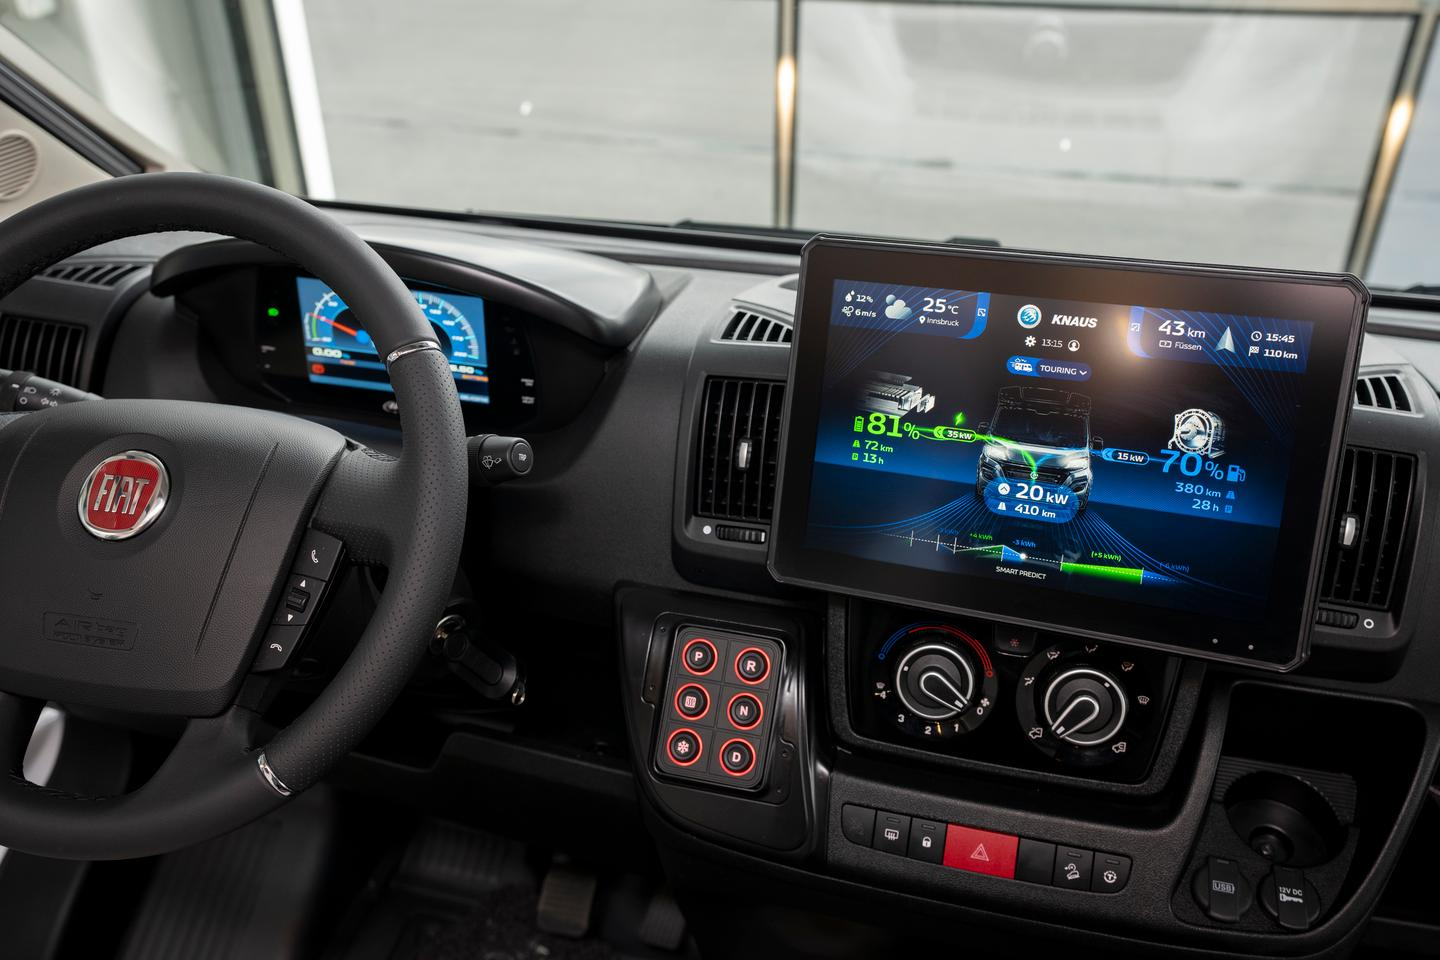 Knaus installed a large central touchscreen for both infotainment and drive information